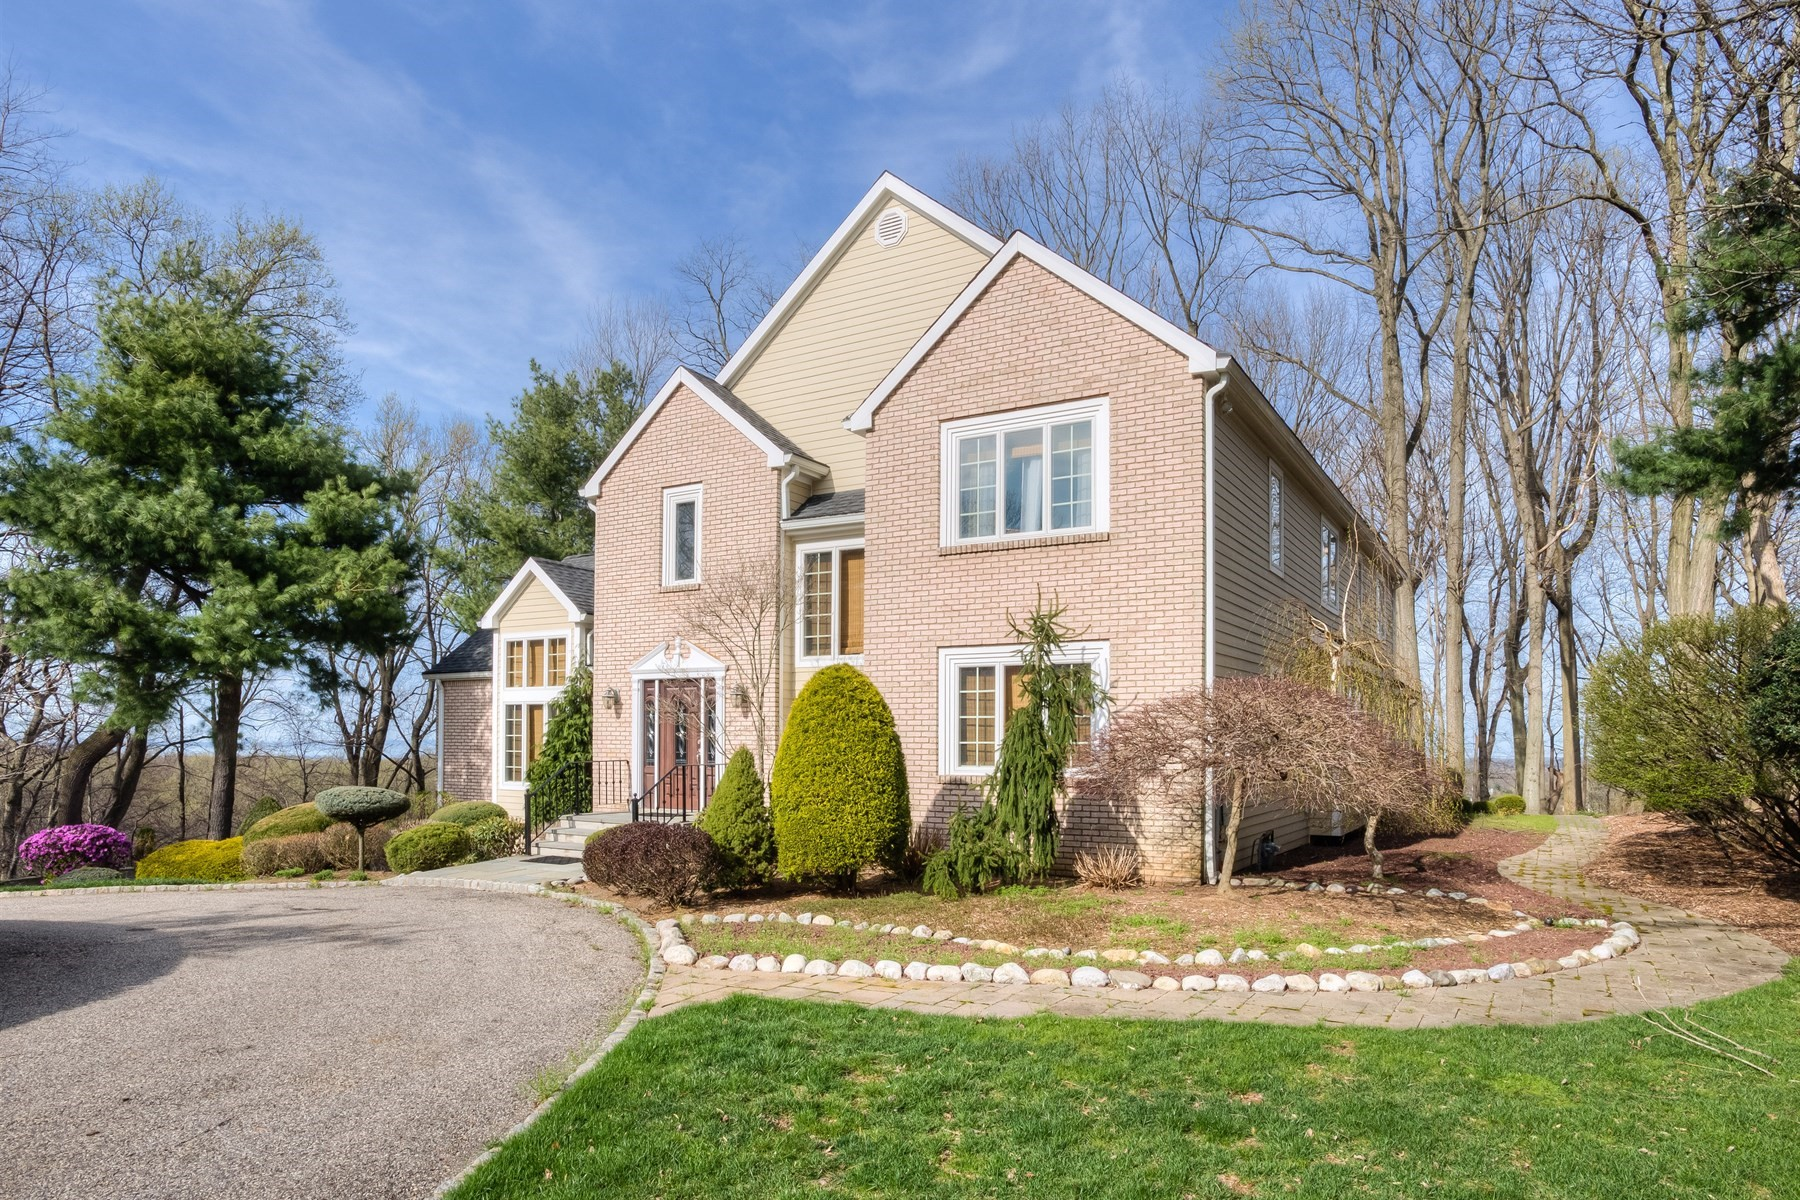 Single Family Home for Sale at Hilltop Privacy 10 Alexis Court Holmdel, New Jersey 07733 United States